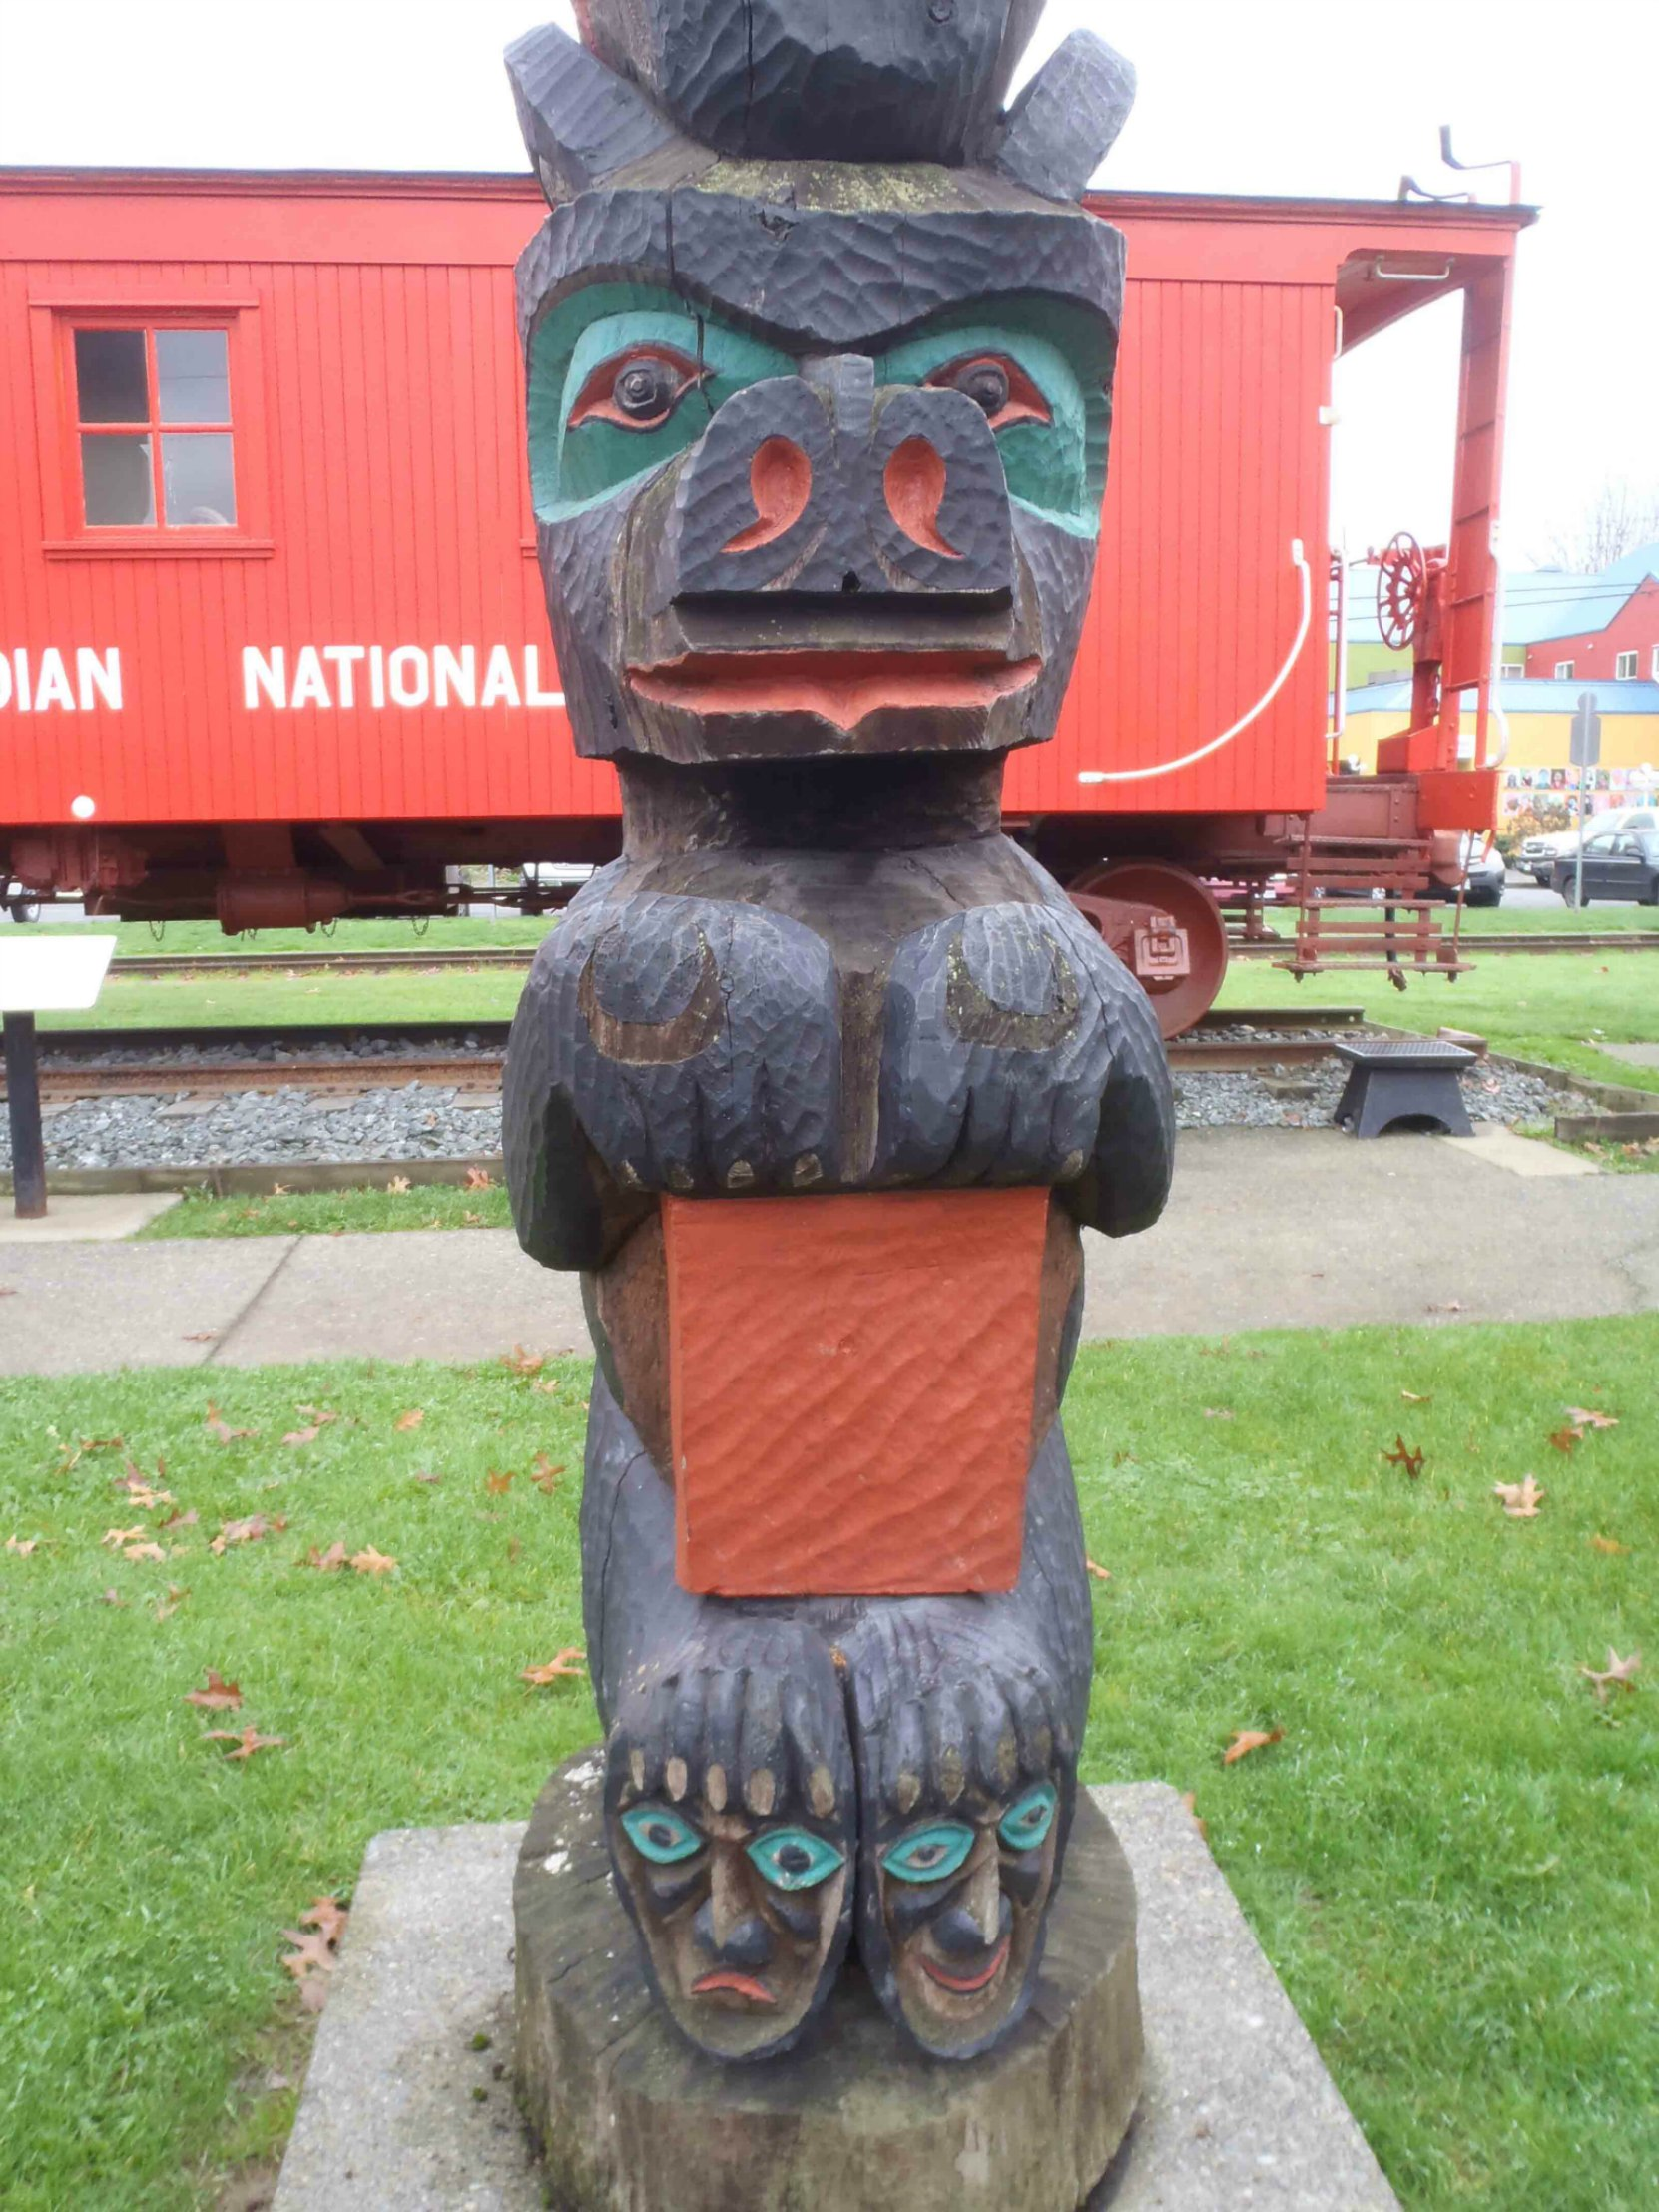 The Pole of Wealth, Bear figure, Canada Avenue, Duncan